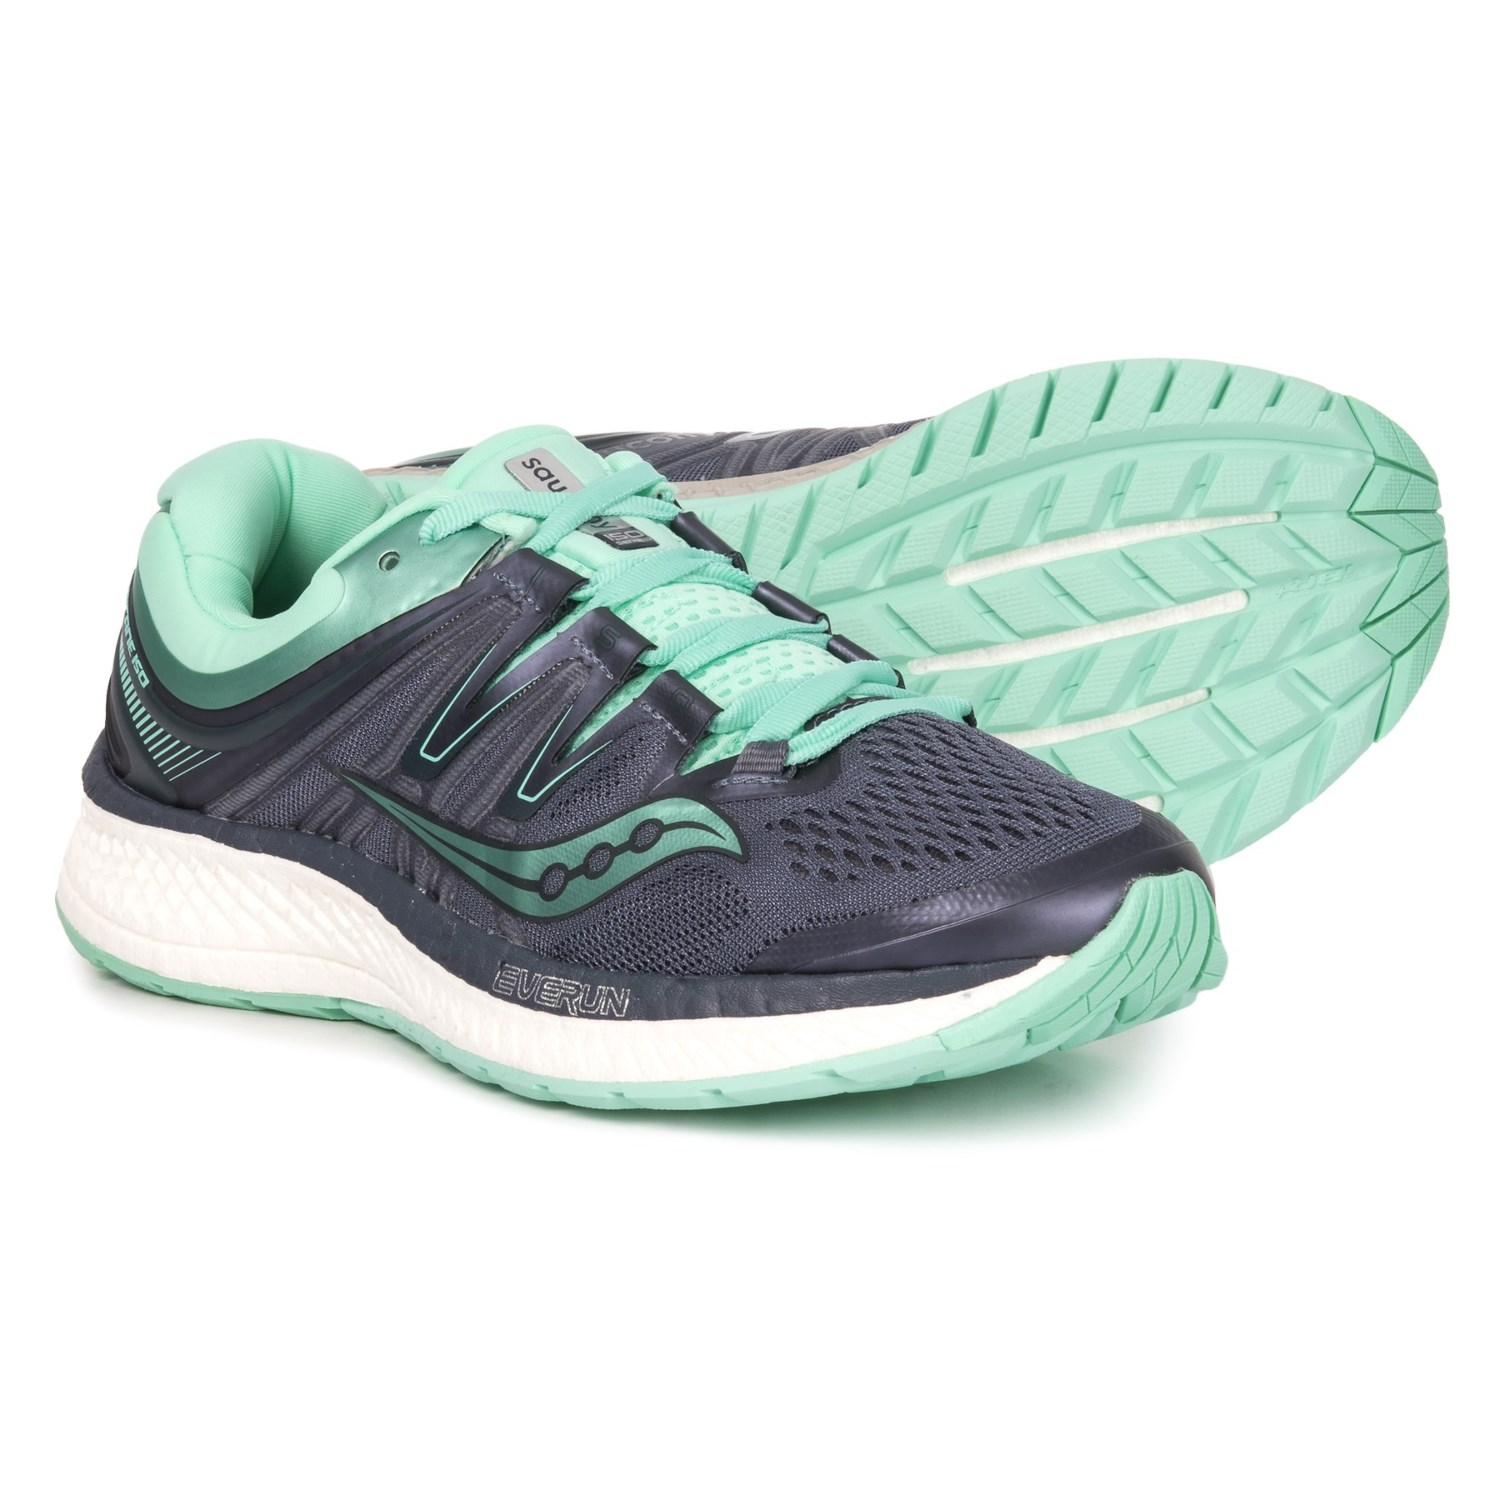 68079e4d4b Saucony Hurricane ISO 4 Running Shoes (For Women)